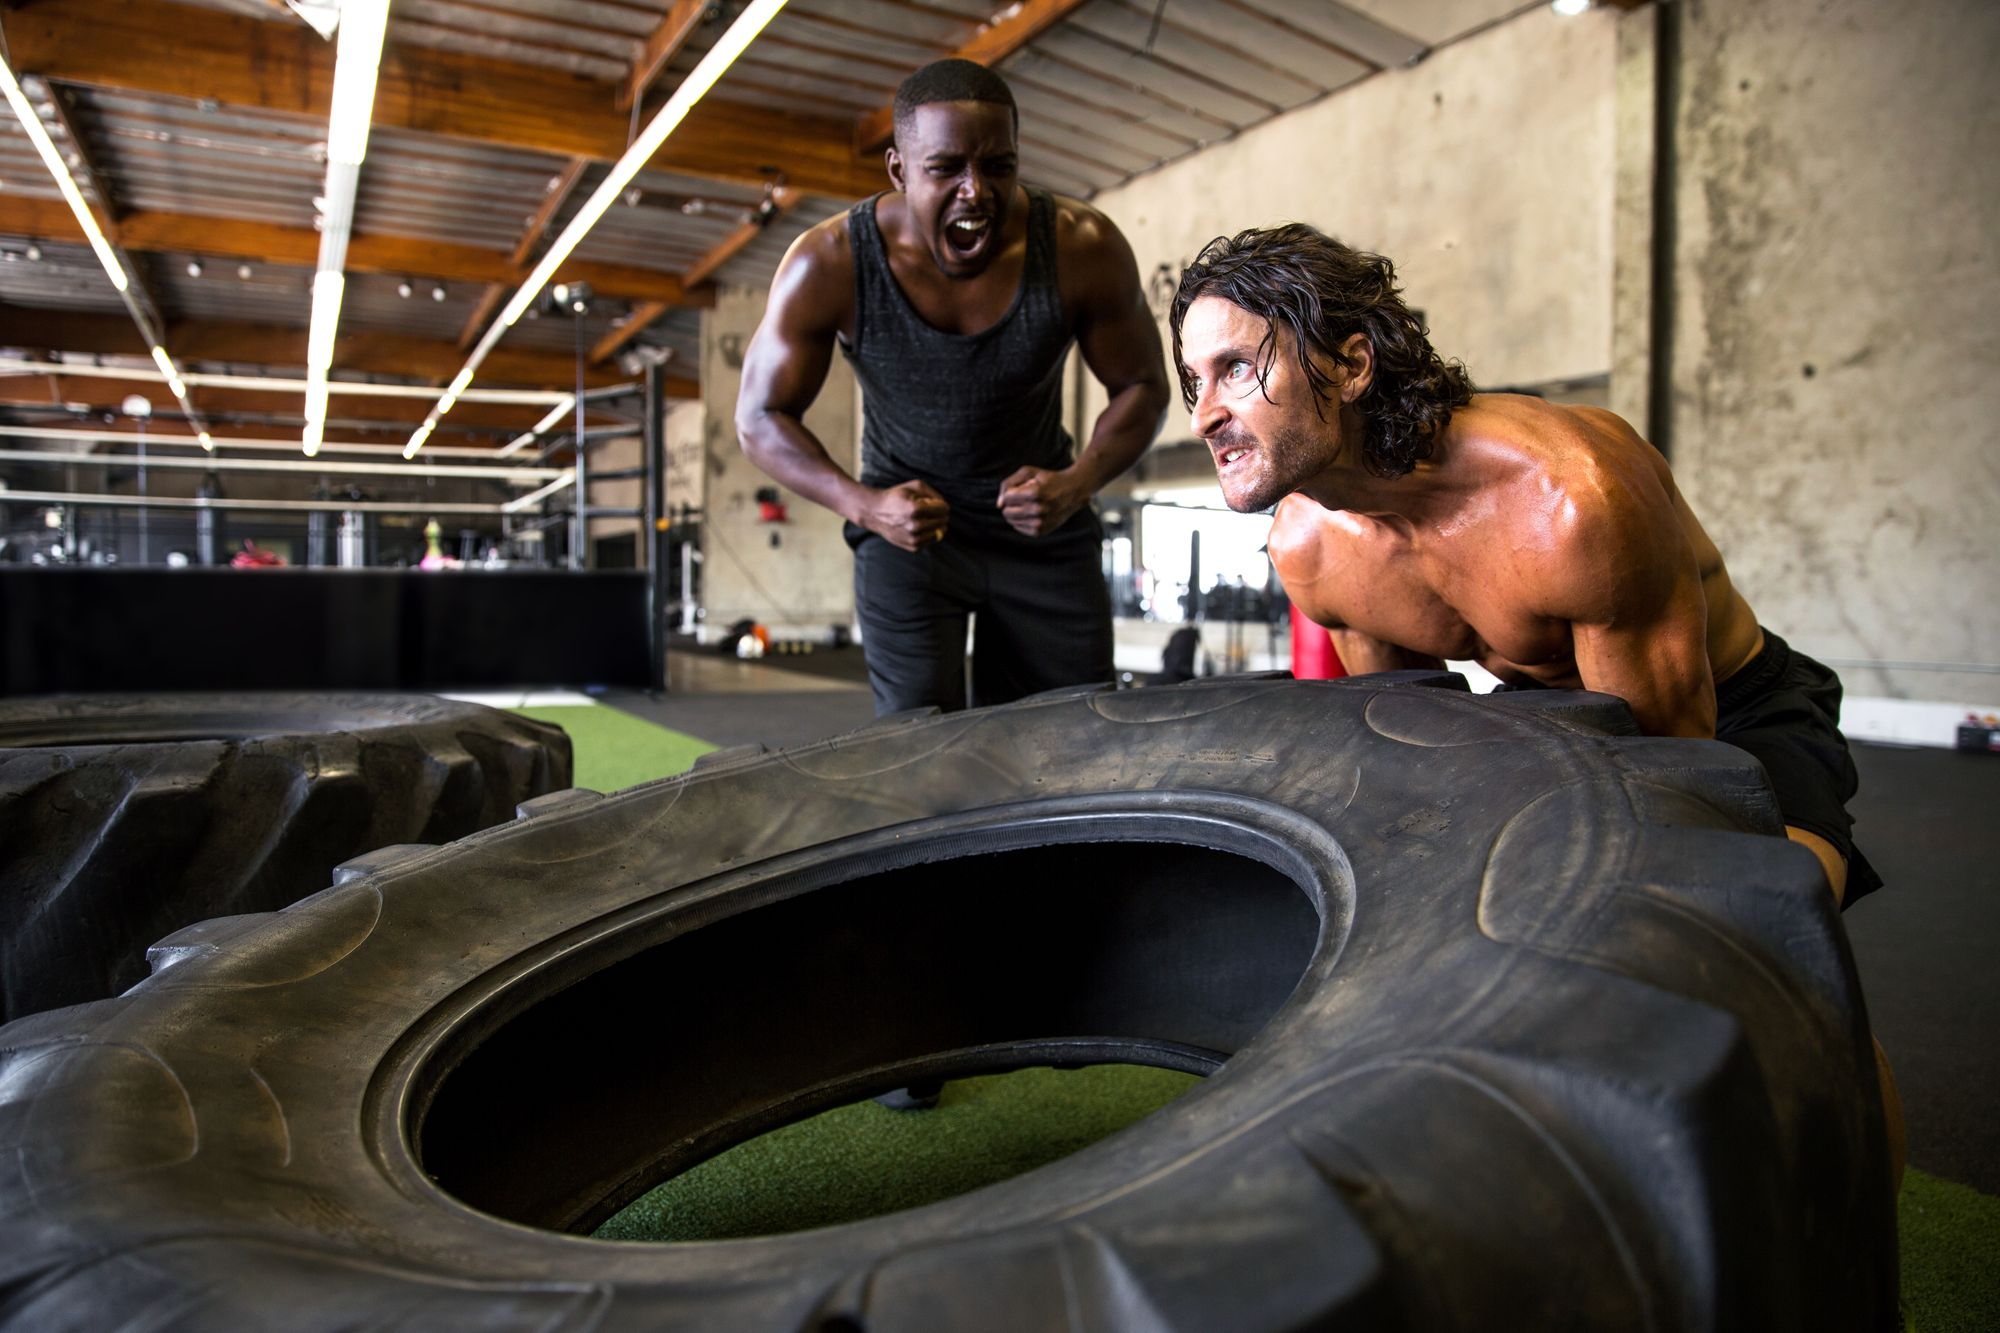 Overload Your Way Into Top Gains